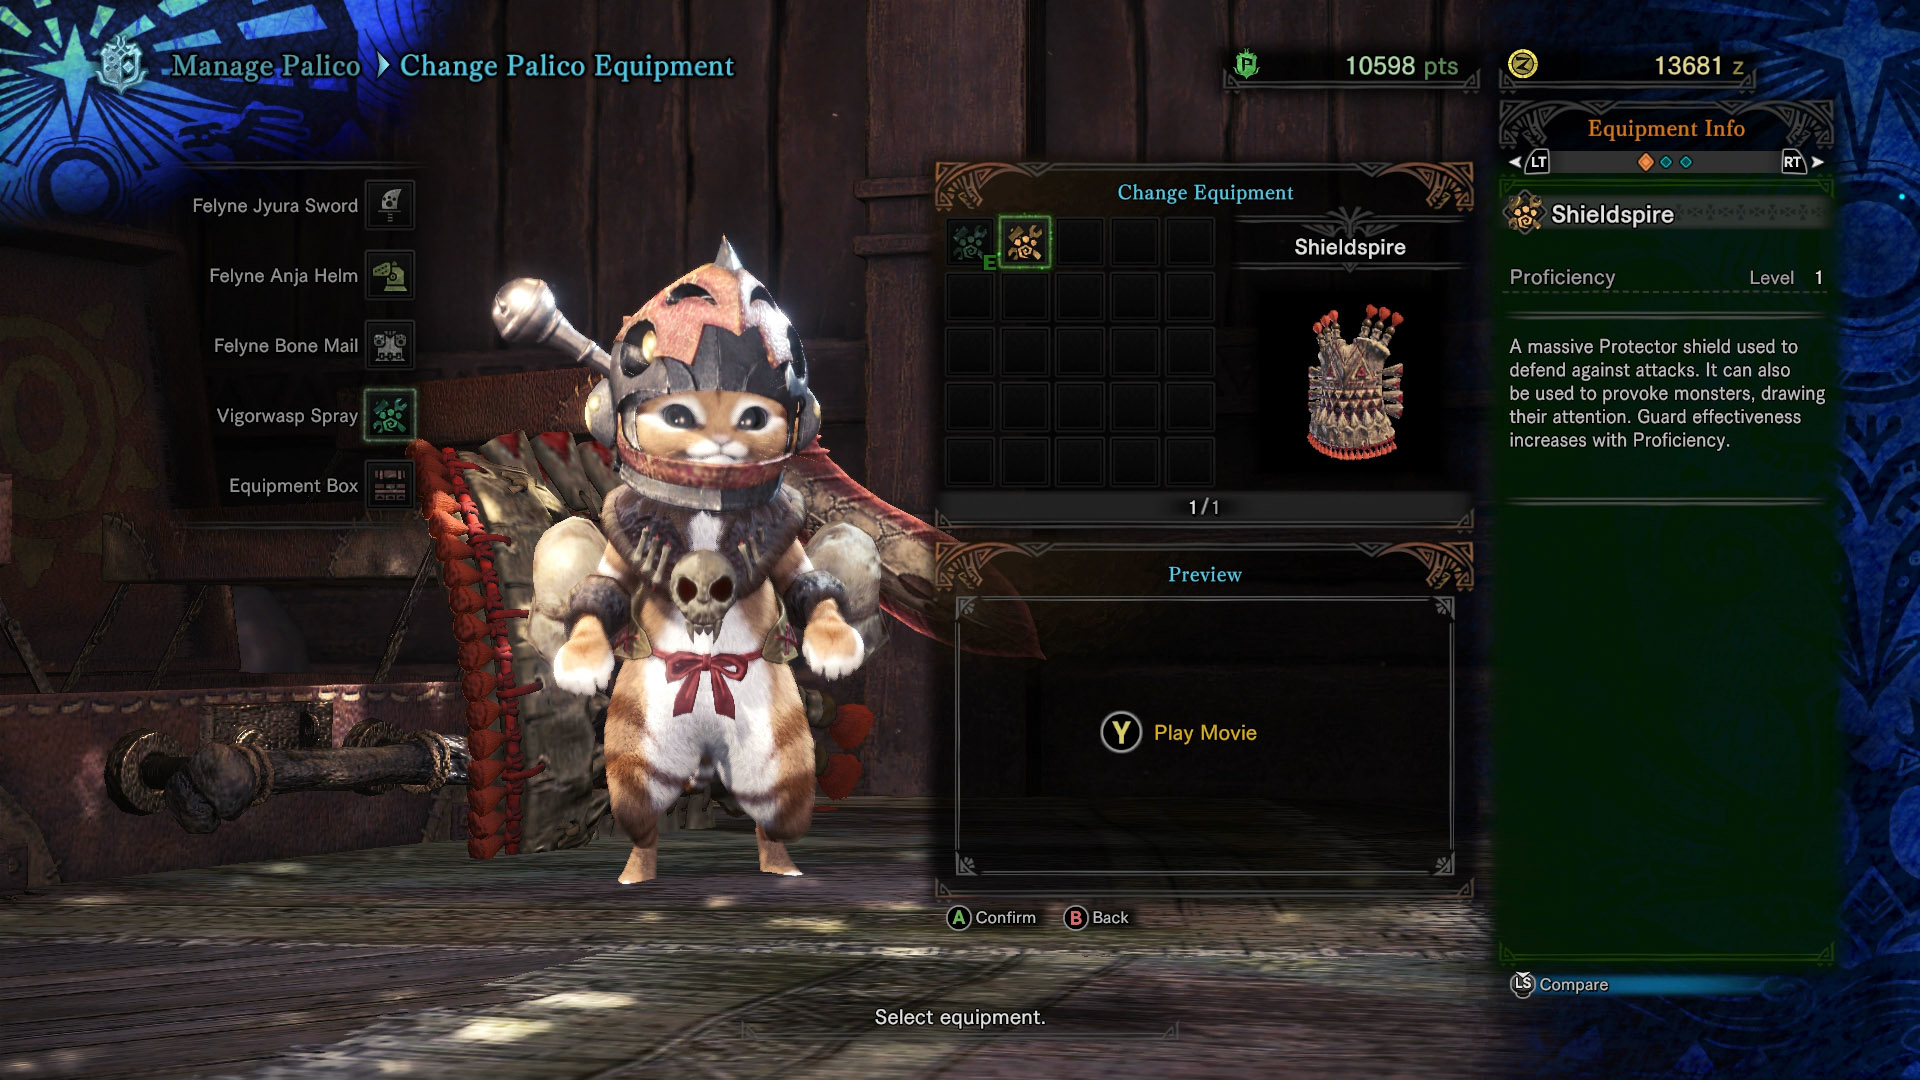 monster hunter world palico guide - palico armor and weapons guide